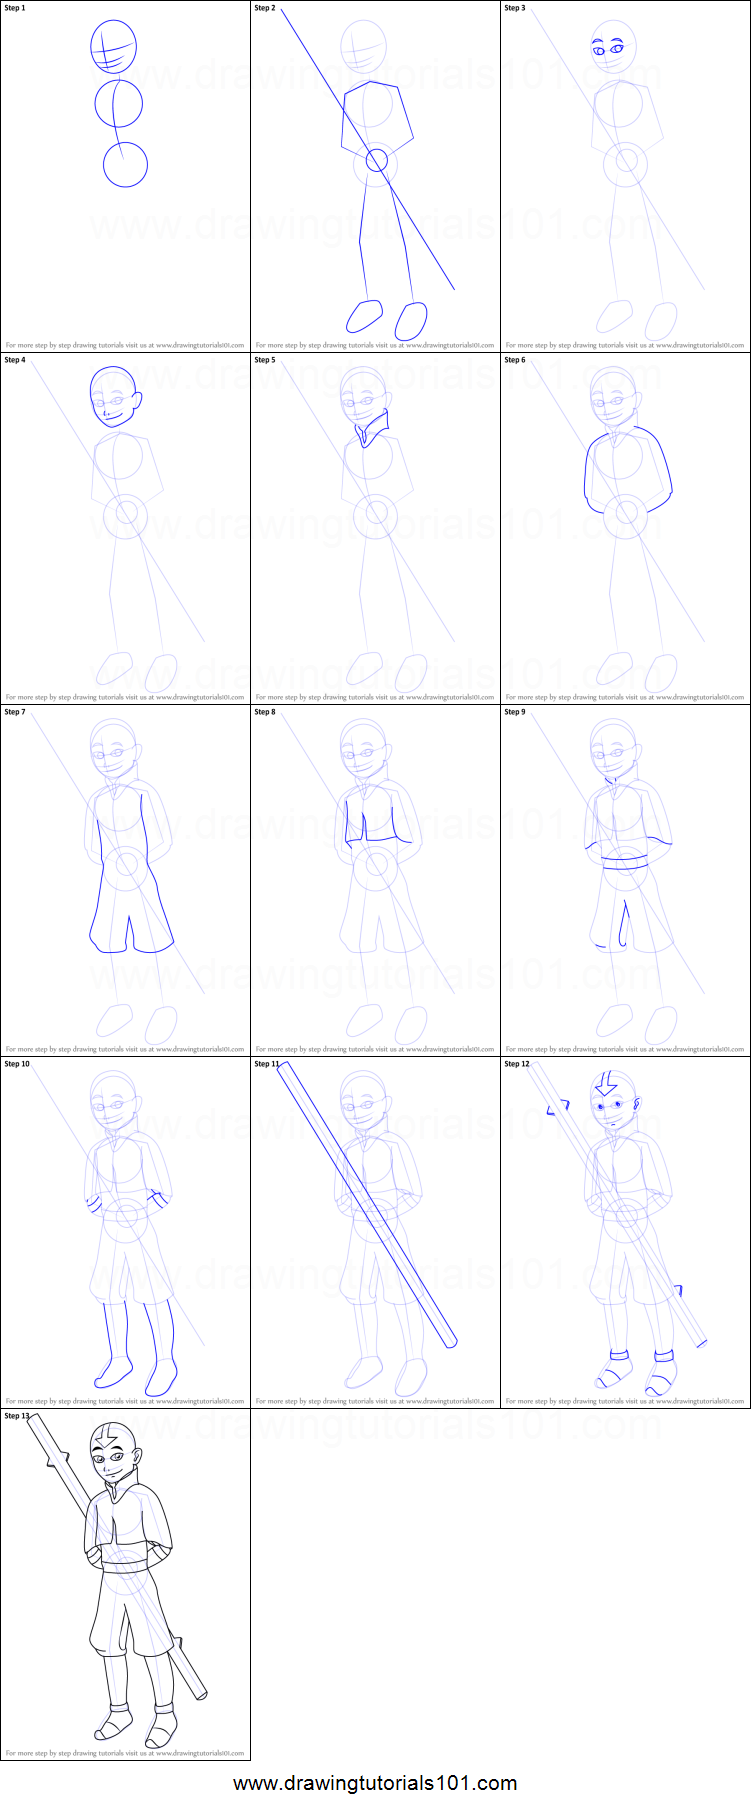 how to draw aang from avatar the last airbender printable step by step drawing sheet drawingtutorials101com